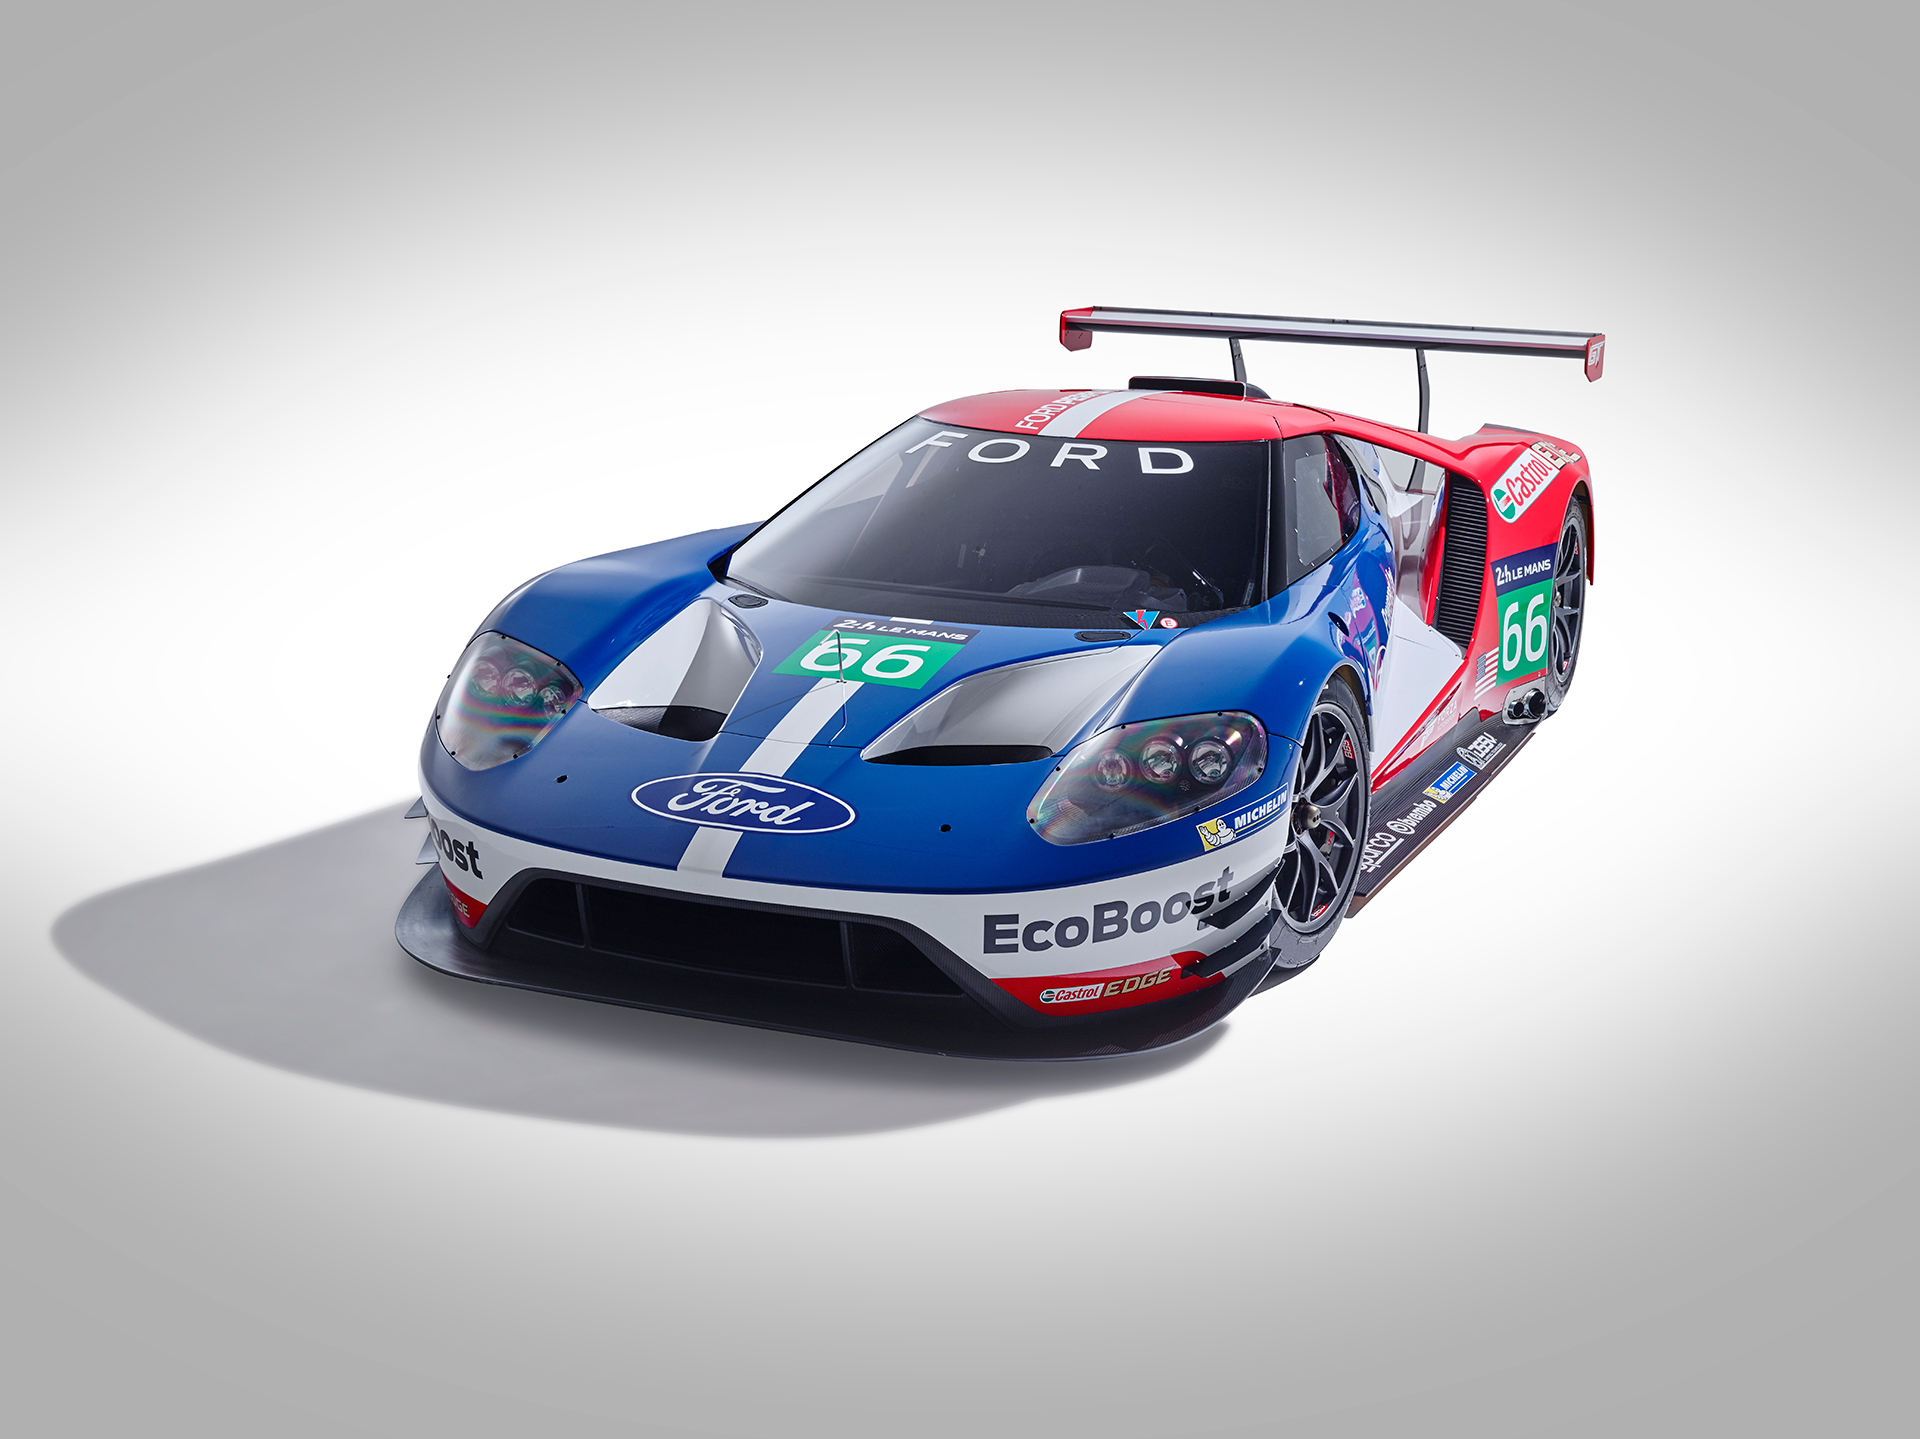 Ford GT LeMans Race Car 2016 - avant / front